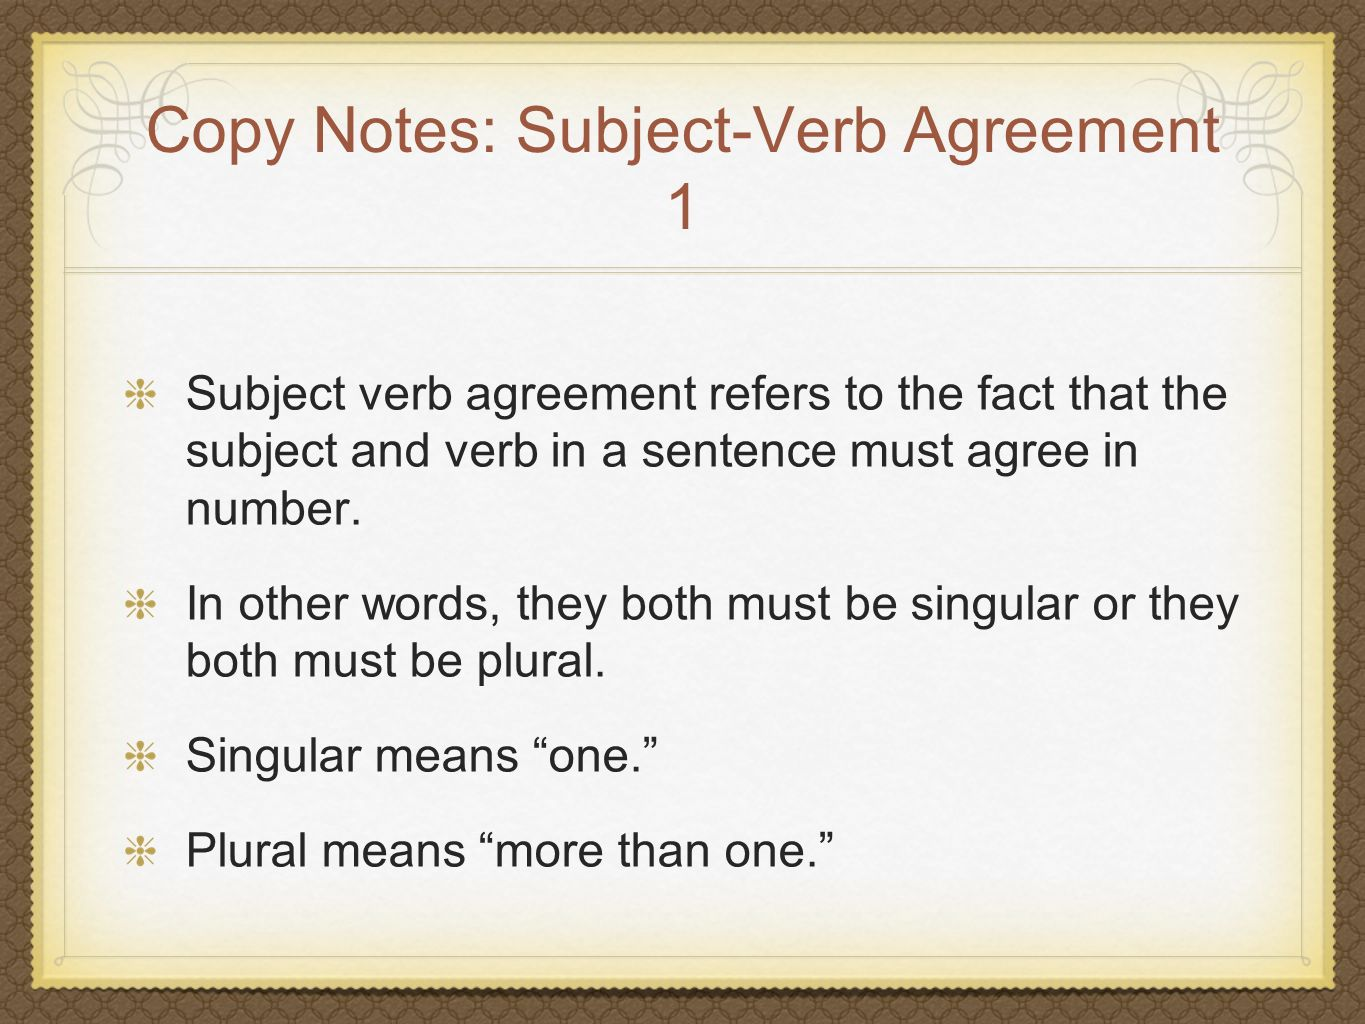 Copy Notes: Subject-Verb Agreement 1